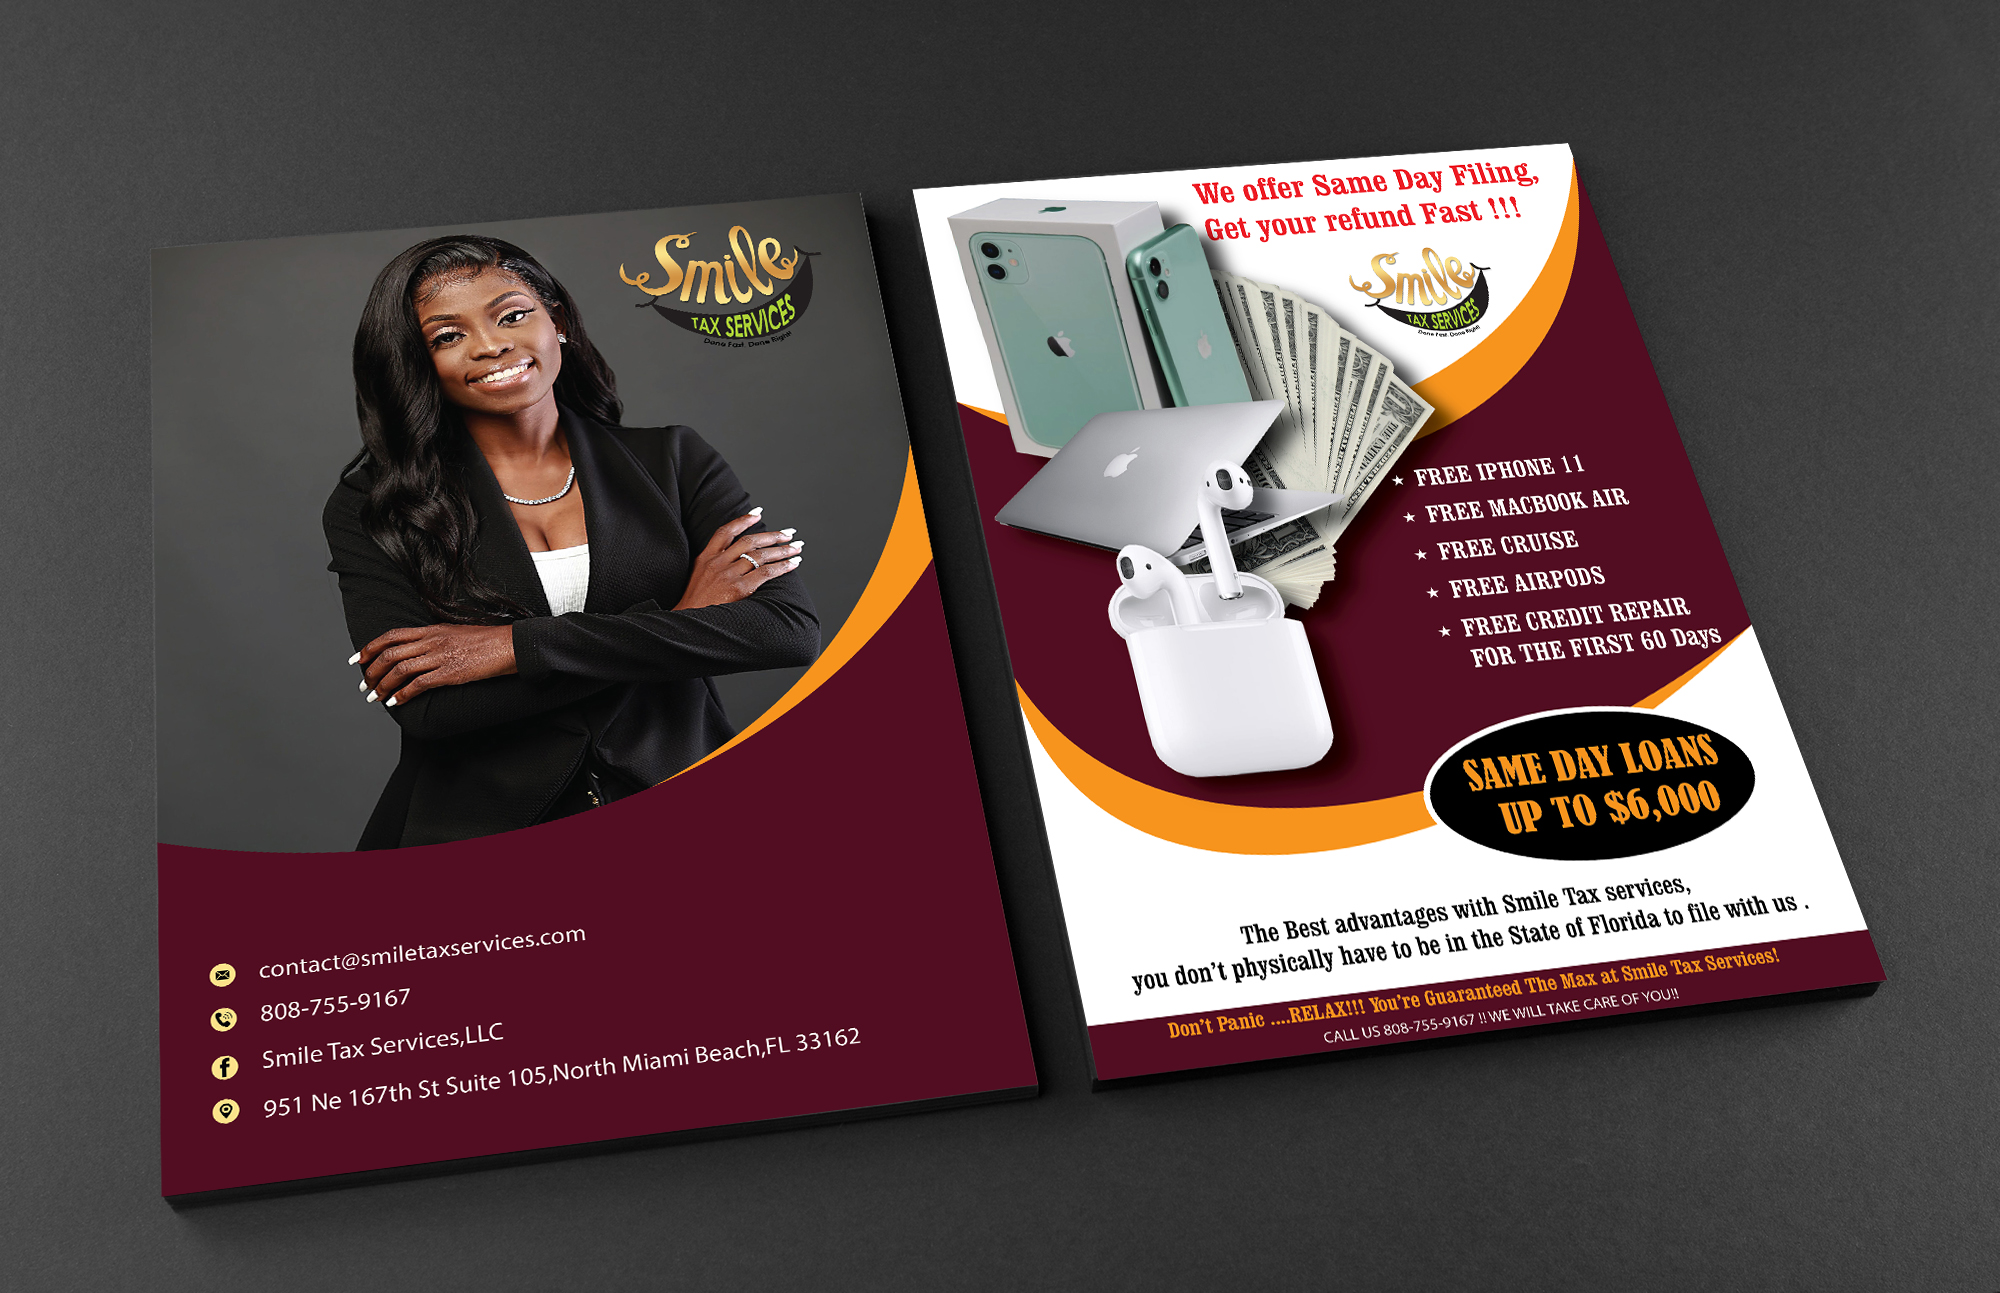 I will design high quality flyer, logo designs, letter heads, data entry, stationery,banner